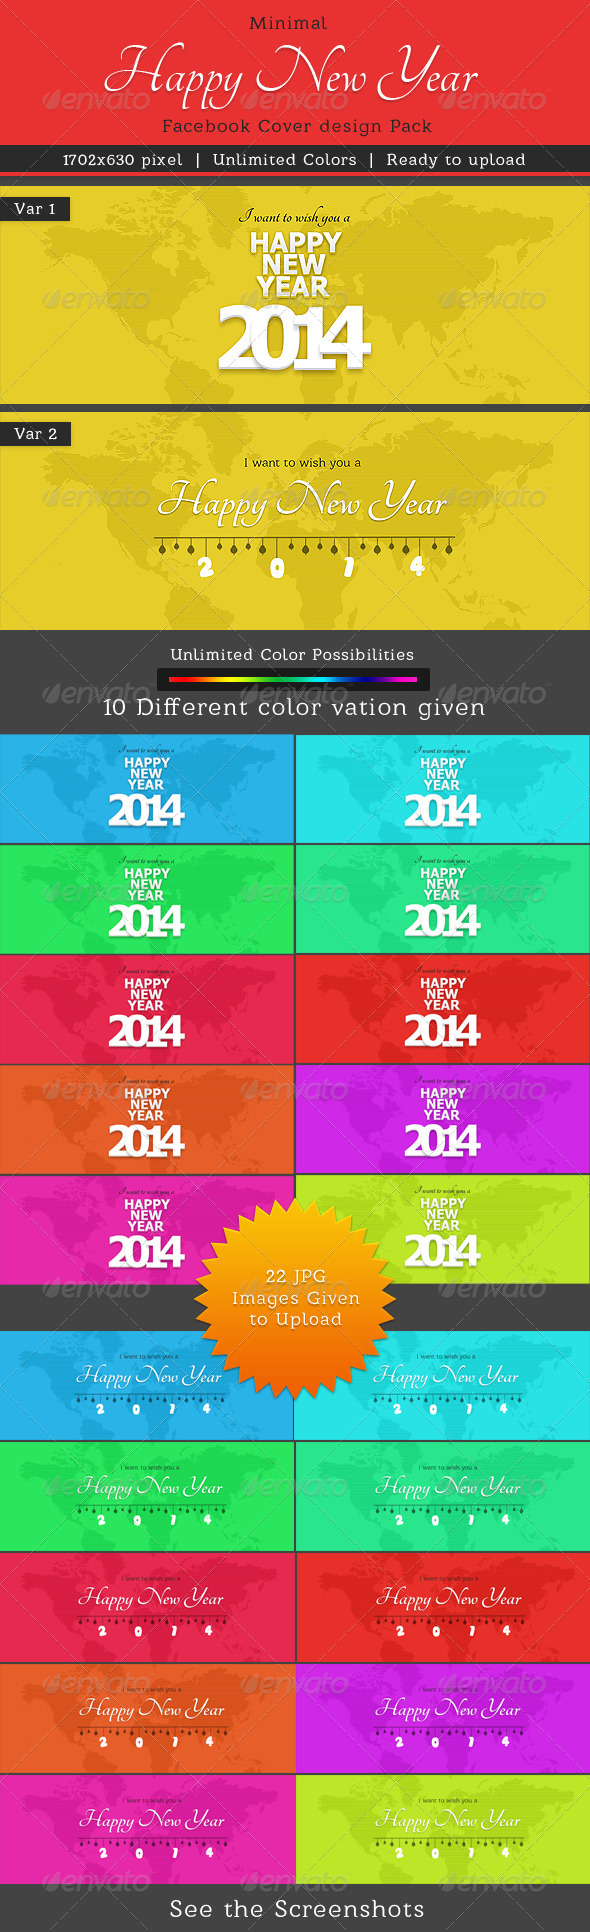 GraphicRiver Minimal New Year Faebook Cover Pack 6473899